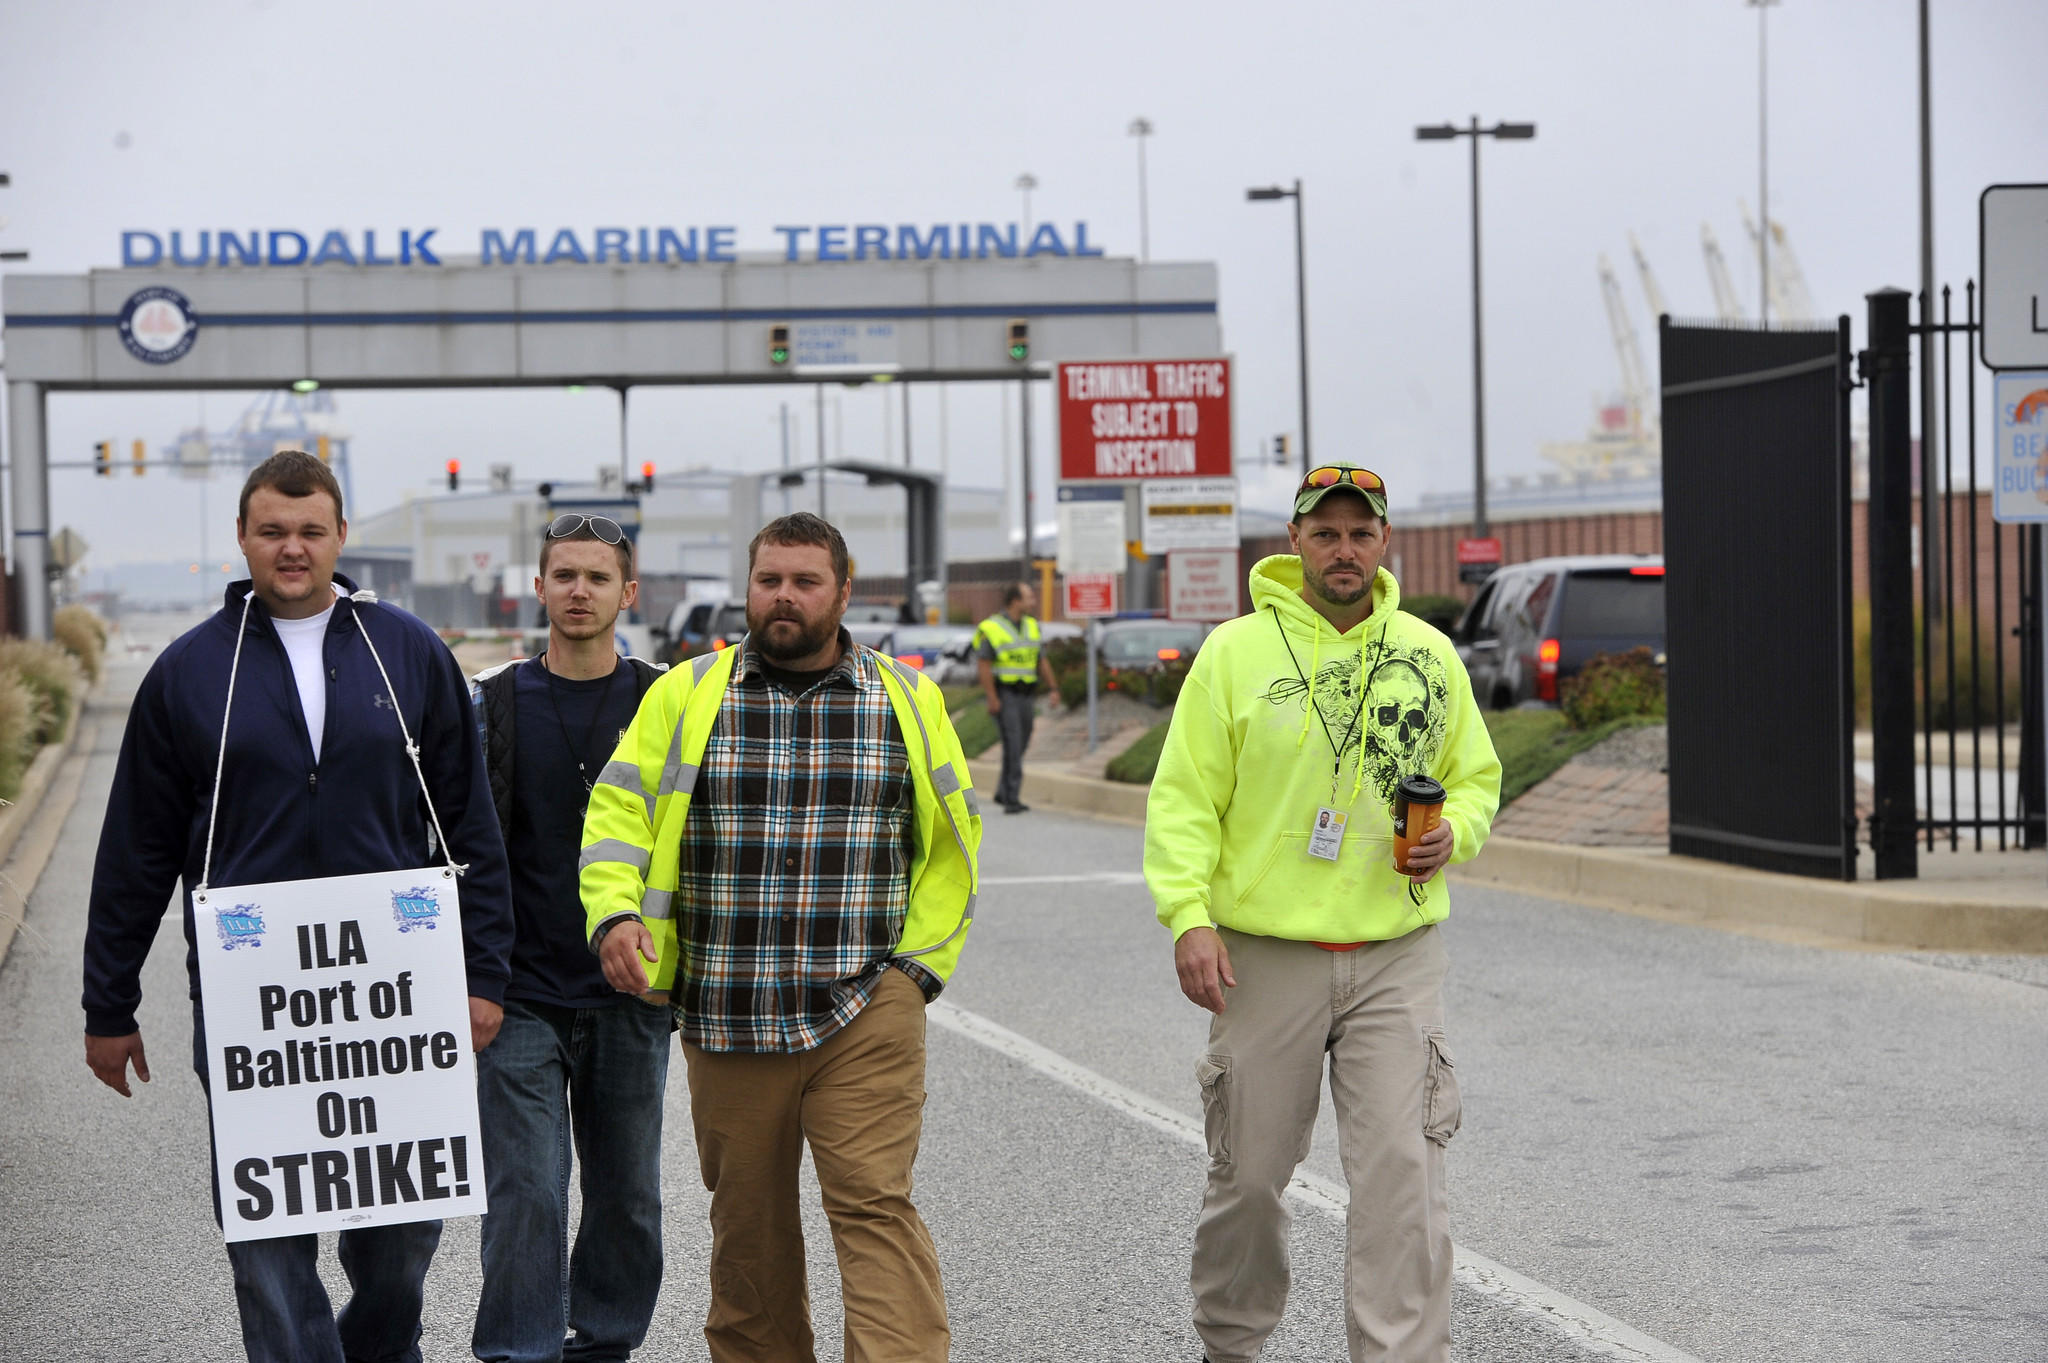 Striking longshoremen, left to right, John Watts, Sparrows Point, Victor McQuay, Jr, Sparrows Point, Ronald Wozniak, Sparrows Point, and Thomas Deters, Pasadena, walk back to the picket line after getting a look at a ship in port. They say they saw the vehicle carrier being unloaded.